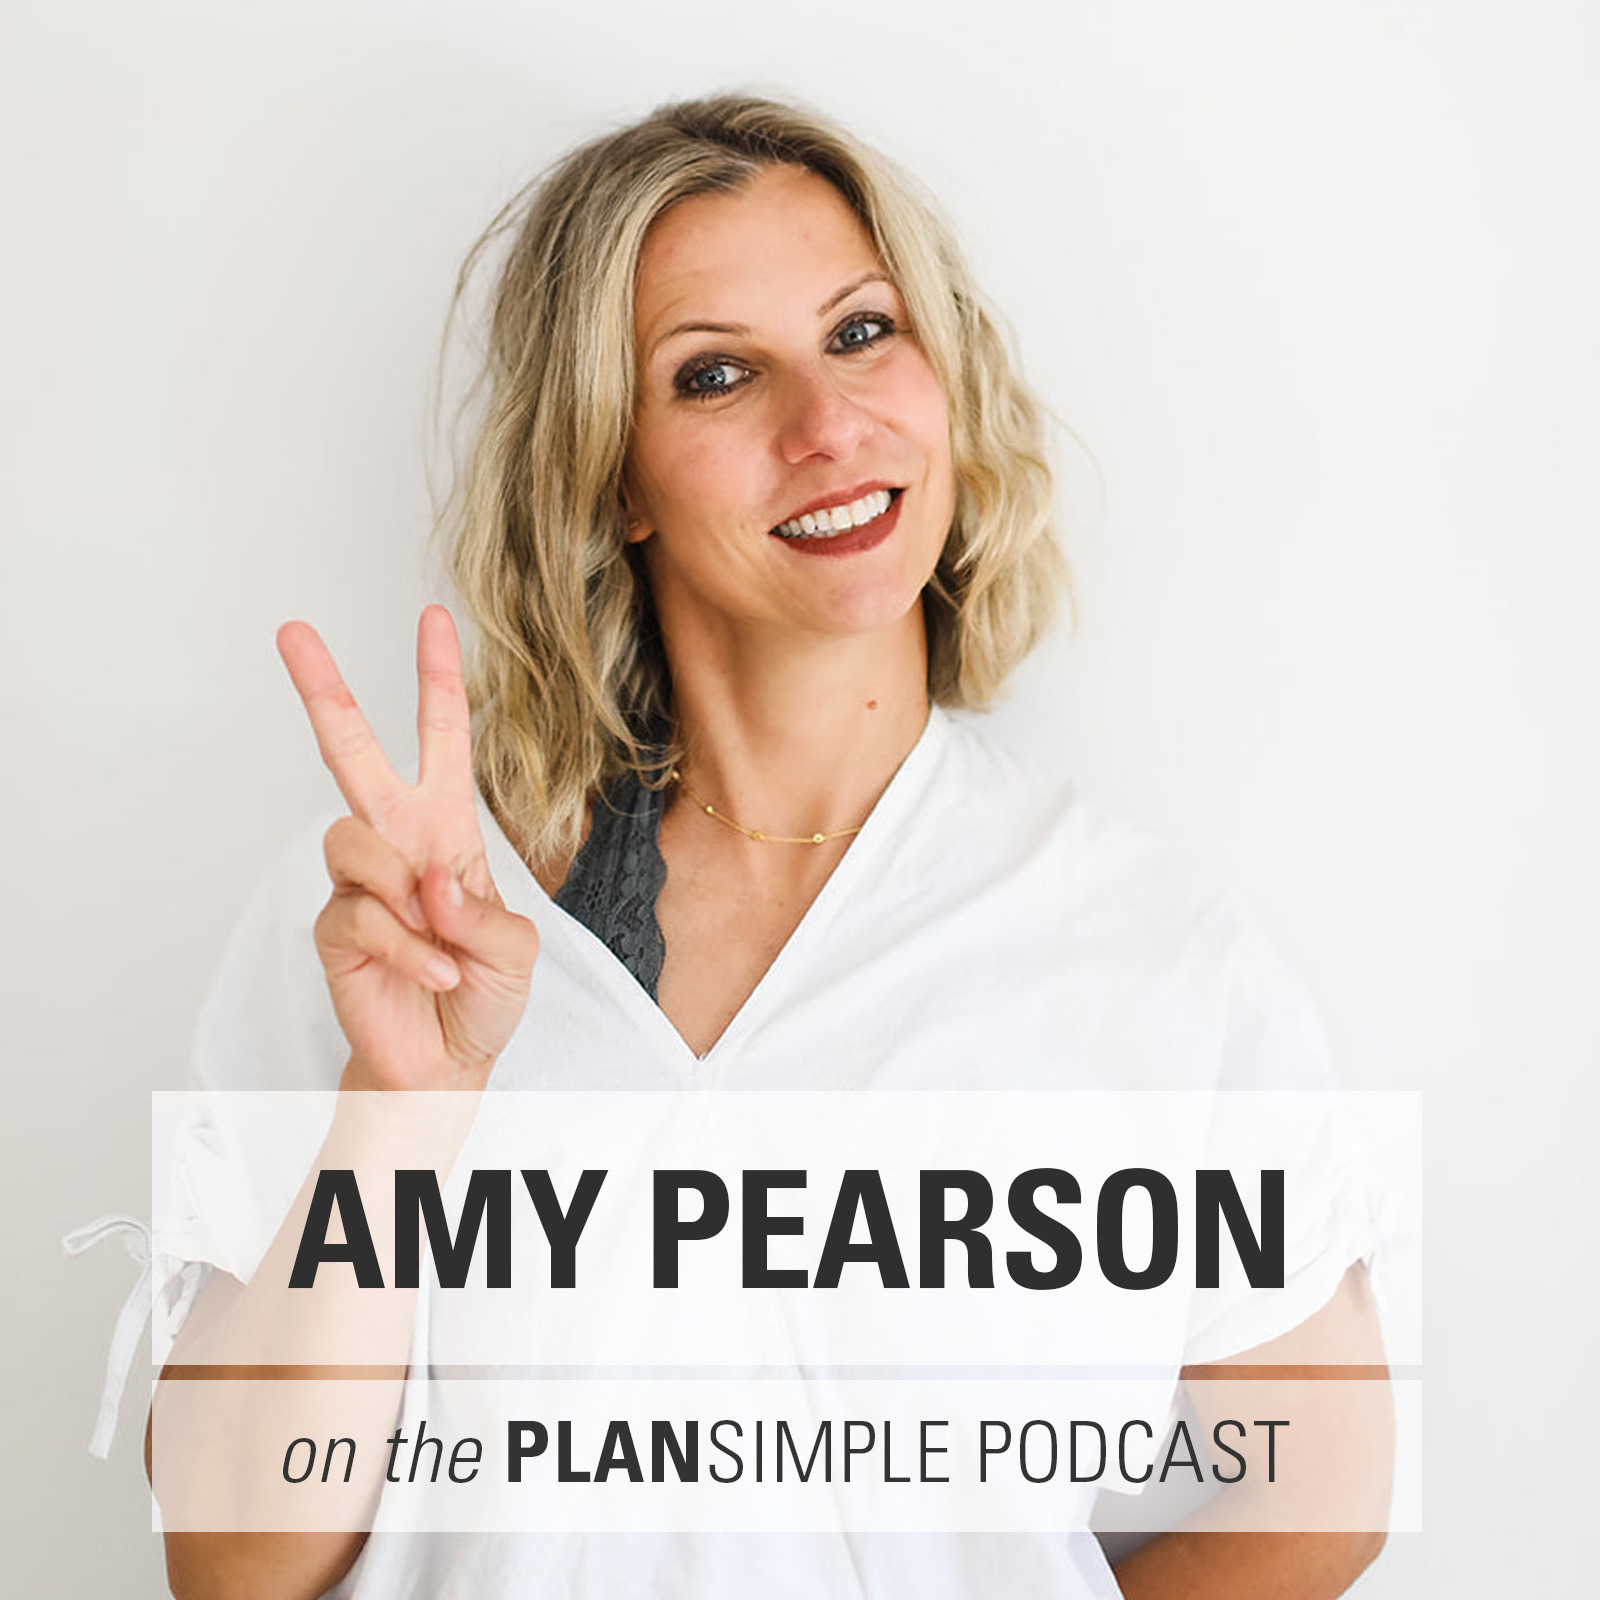 On Being With Amy Pearson